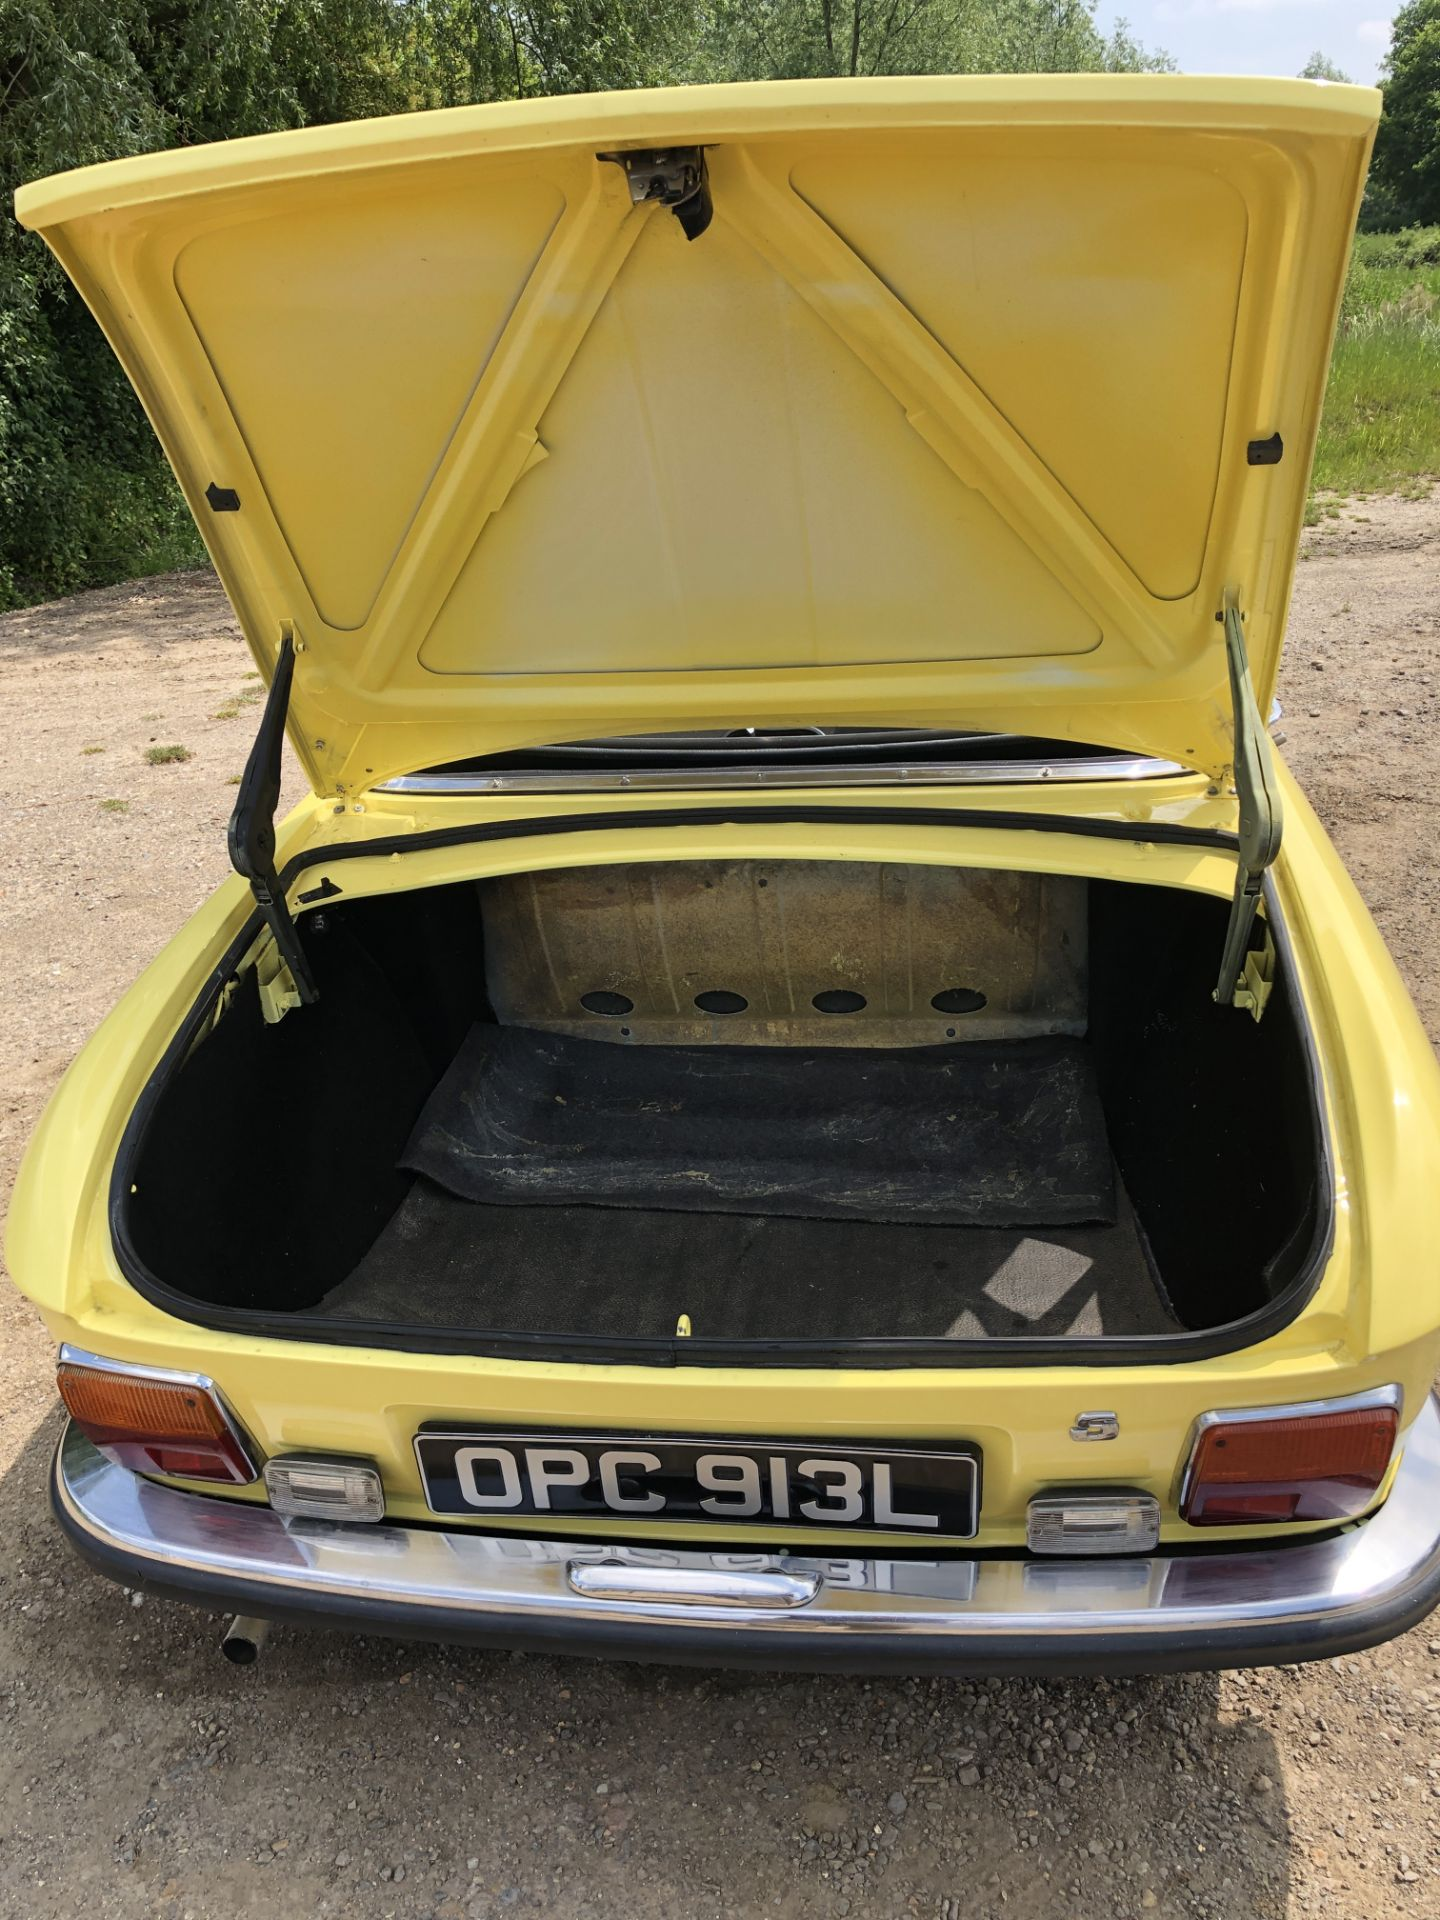 Rare Right Hand Drive Peugeot 304 Convertible, Registration OPC 913L, First Registered 2nd - Image 31 of 48